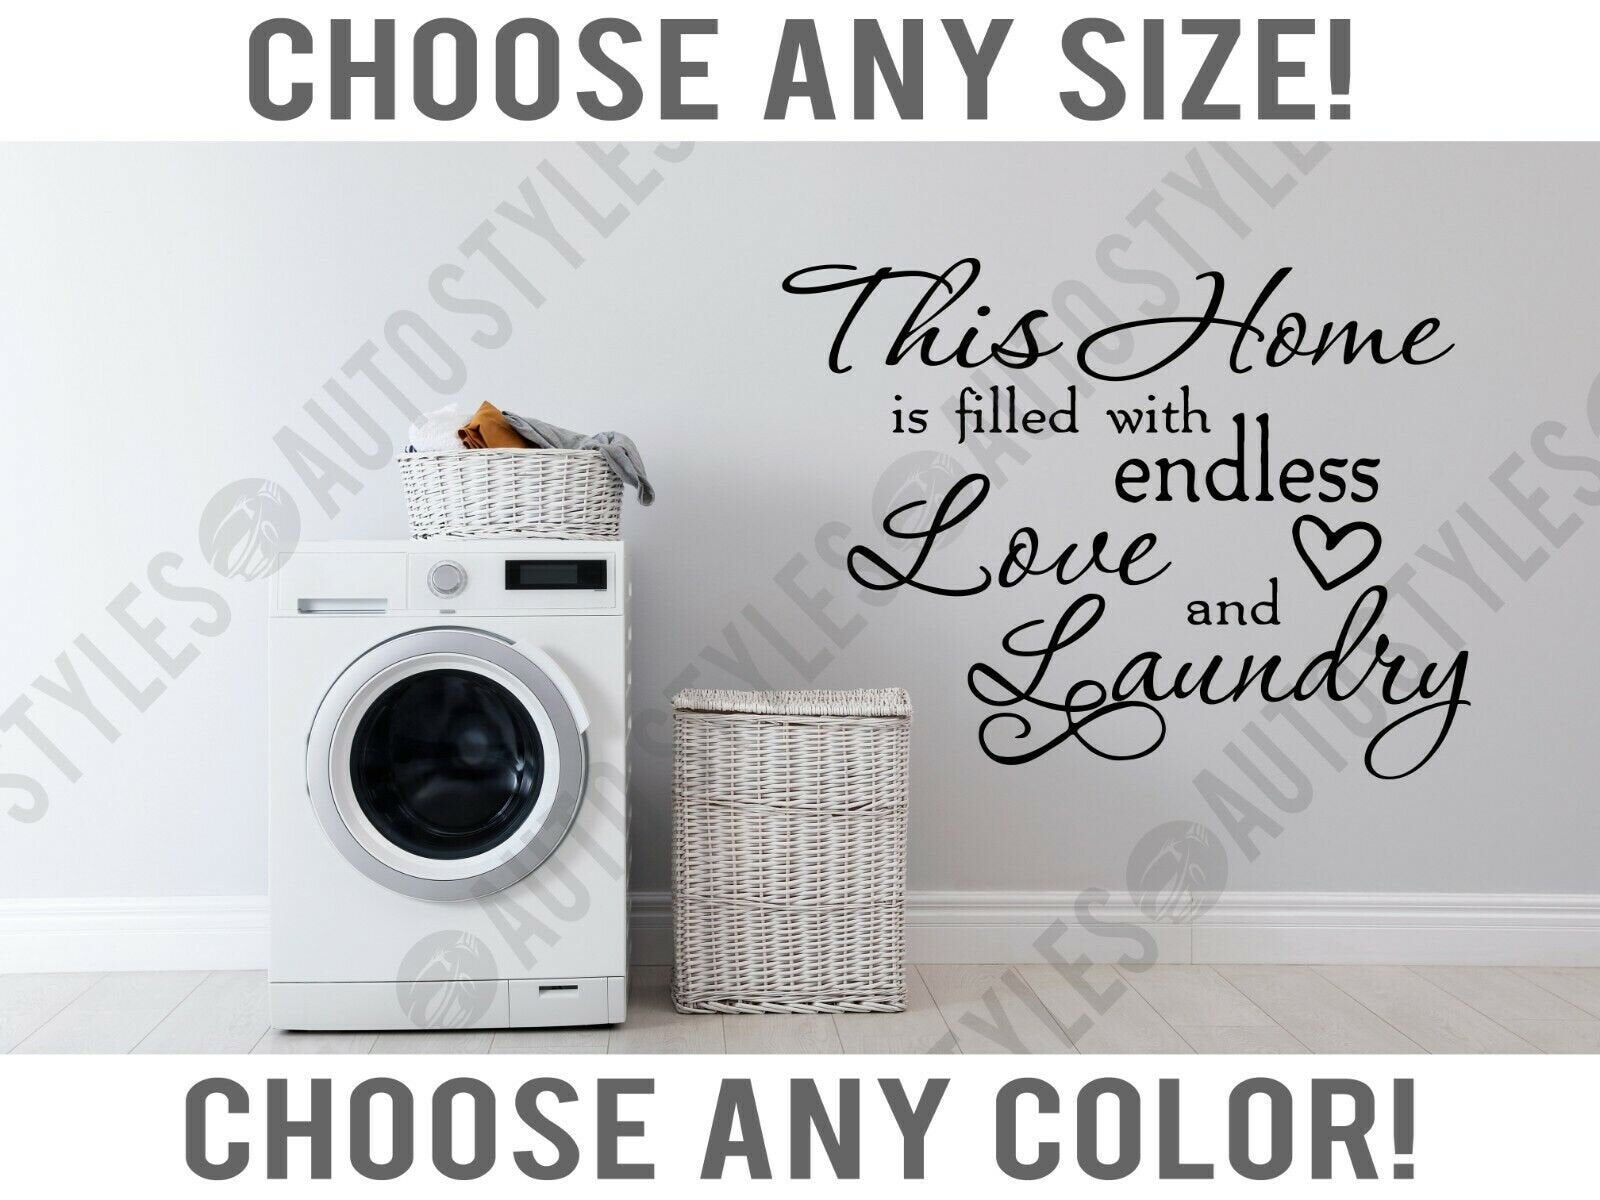 Home Filled With Endless Laundry Room Wall Decal Home Decor Vinyl Sticker With Squeegee In 2020 Wall Decals Home Decor Laundry Room